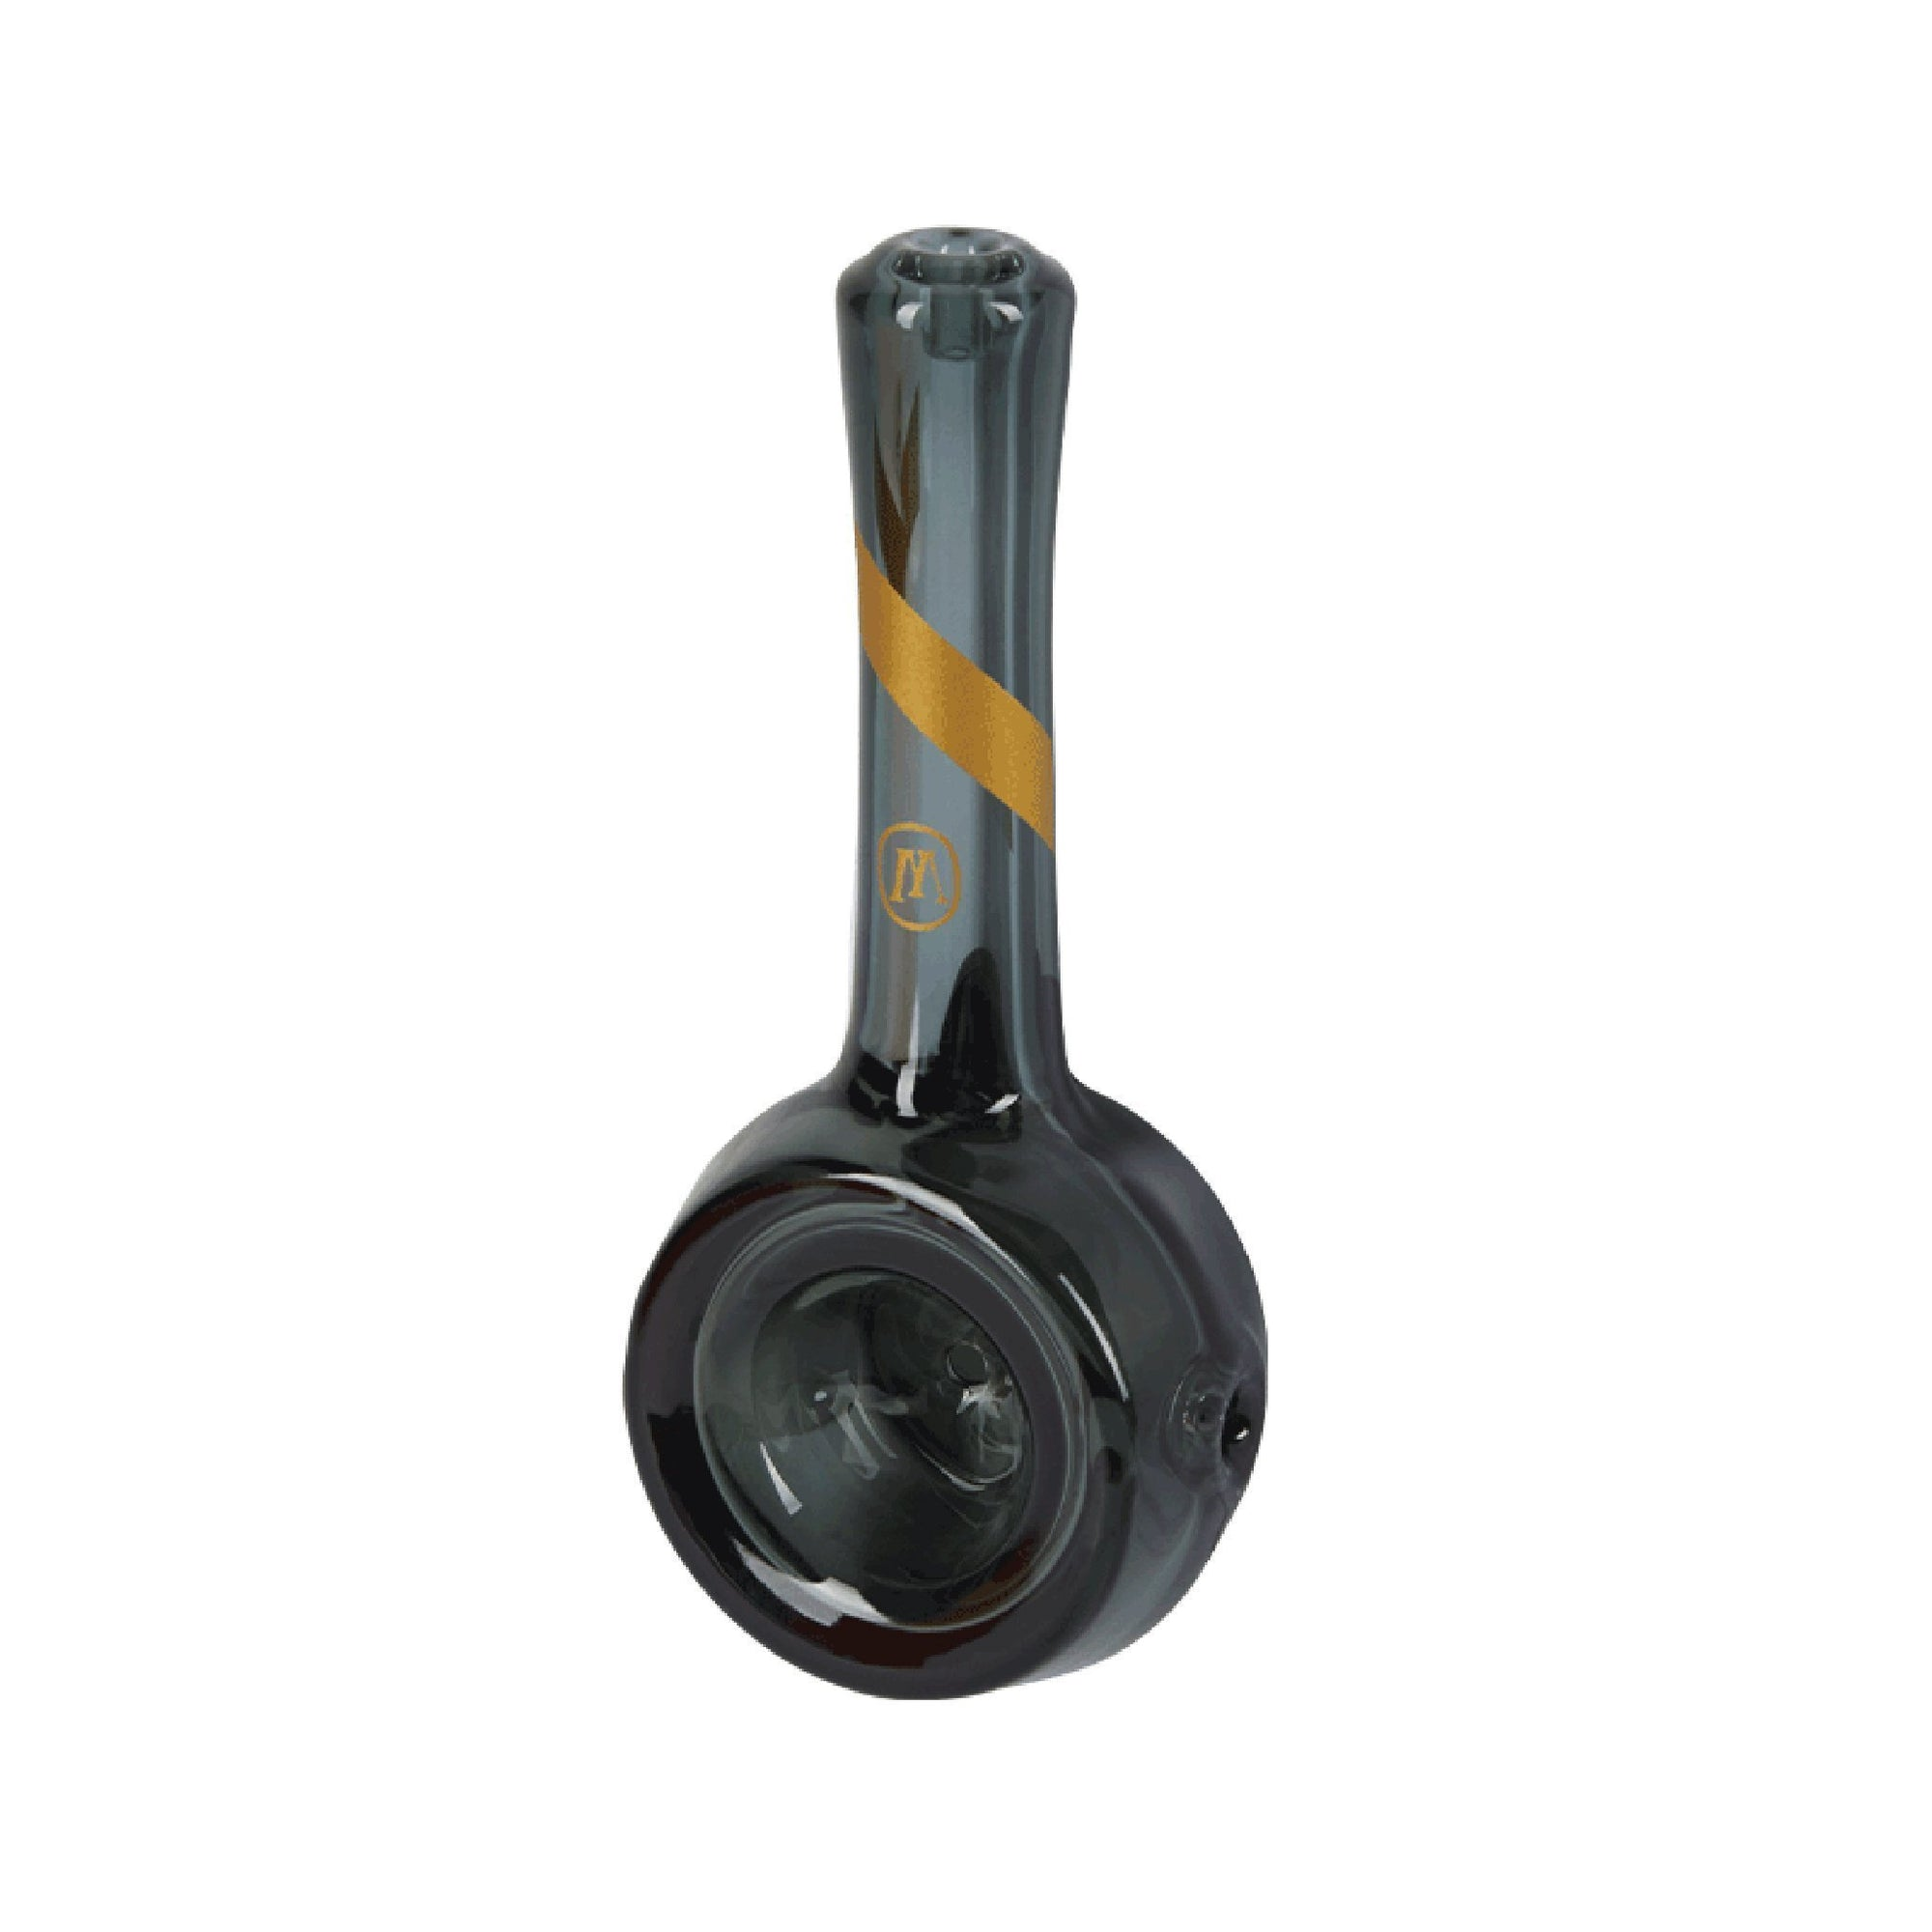 Upside down shot of 4.5 inch Marley Natural Smoked Glass Spoon Pipe shiny black color golden accents M logo bowl facing left